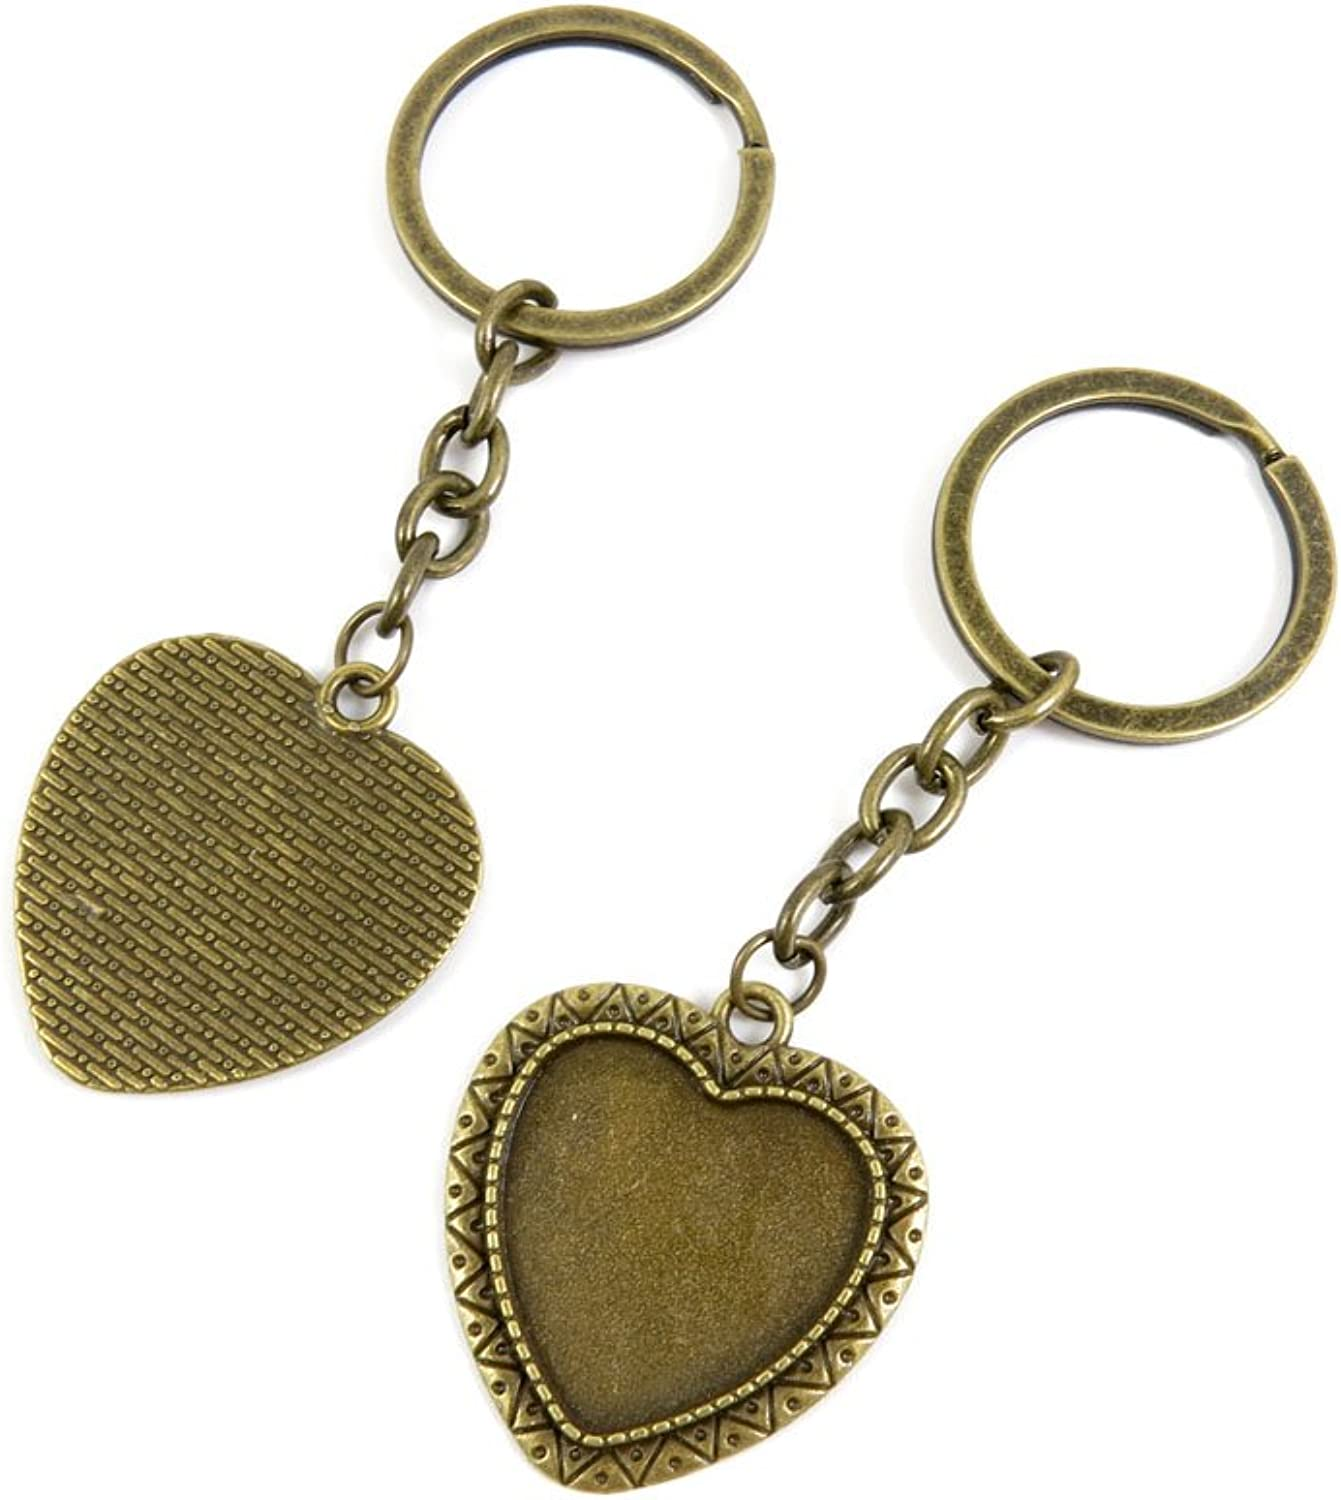 140 Pieces Fashion Jewelry Keyring Keychain Door Car Key Tag Ring Chain Supplier Supply Wholesale Bulk Lots Q9SR3 Heart Cabochon Frame Blanks 25MM